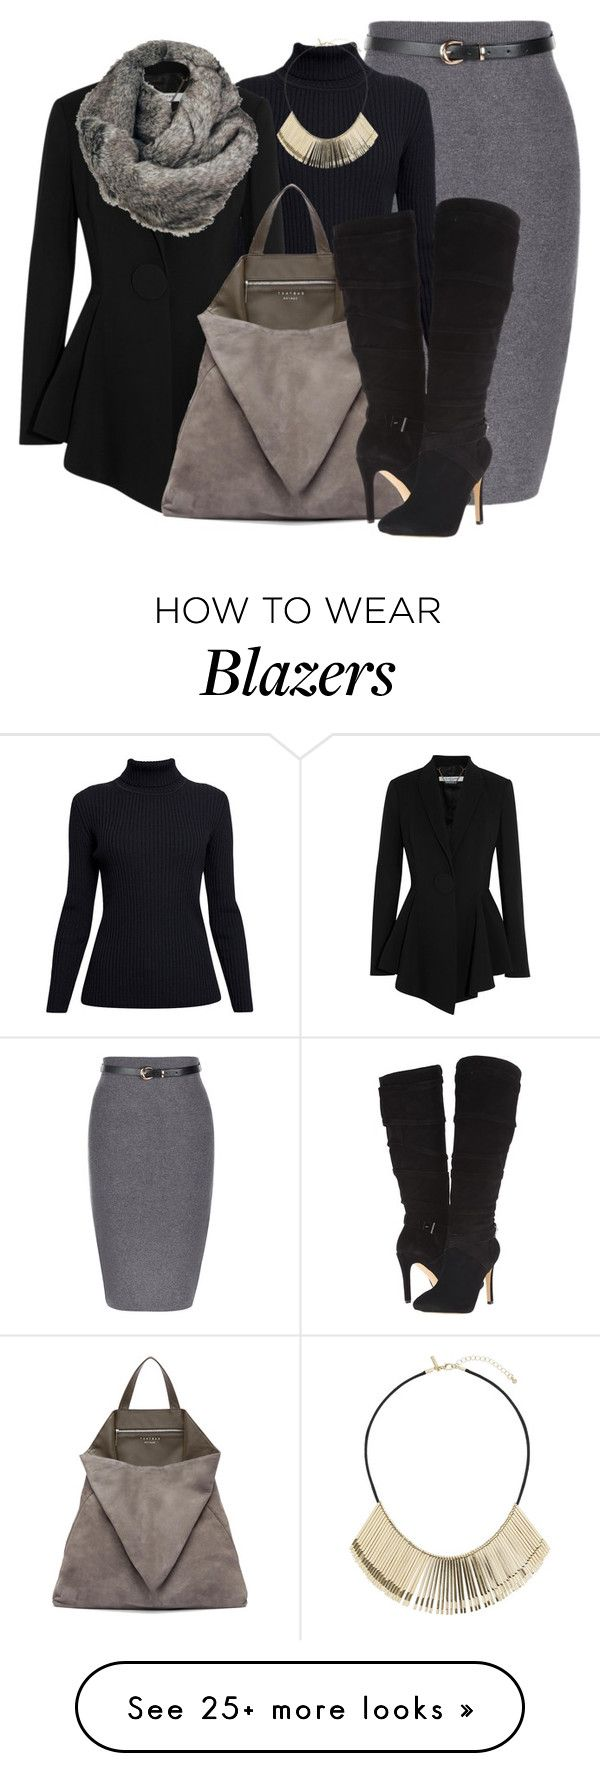 """""""Untitled #965"""" by mkomorowski on Polyvore featuring Rumour London, Givenchy, Black Rivet, TSATSAS, GUESS, Topshop, women's clothing, women's fashion, women and female"""